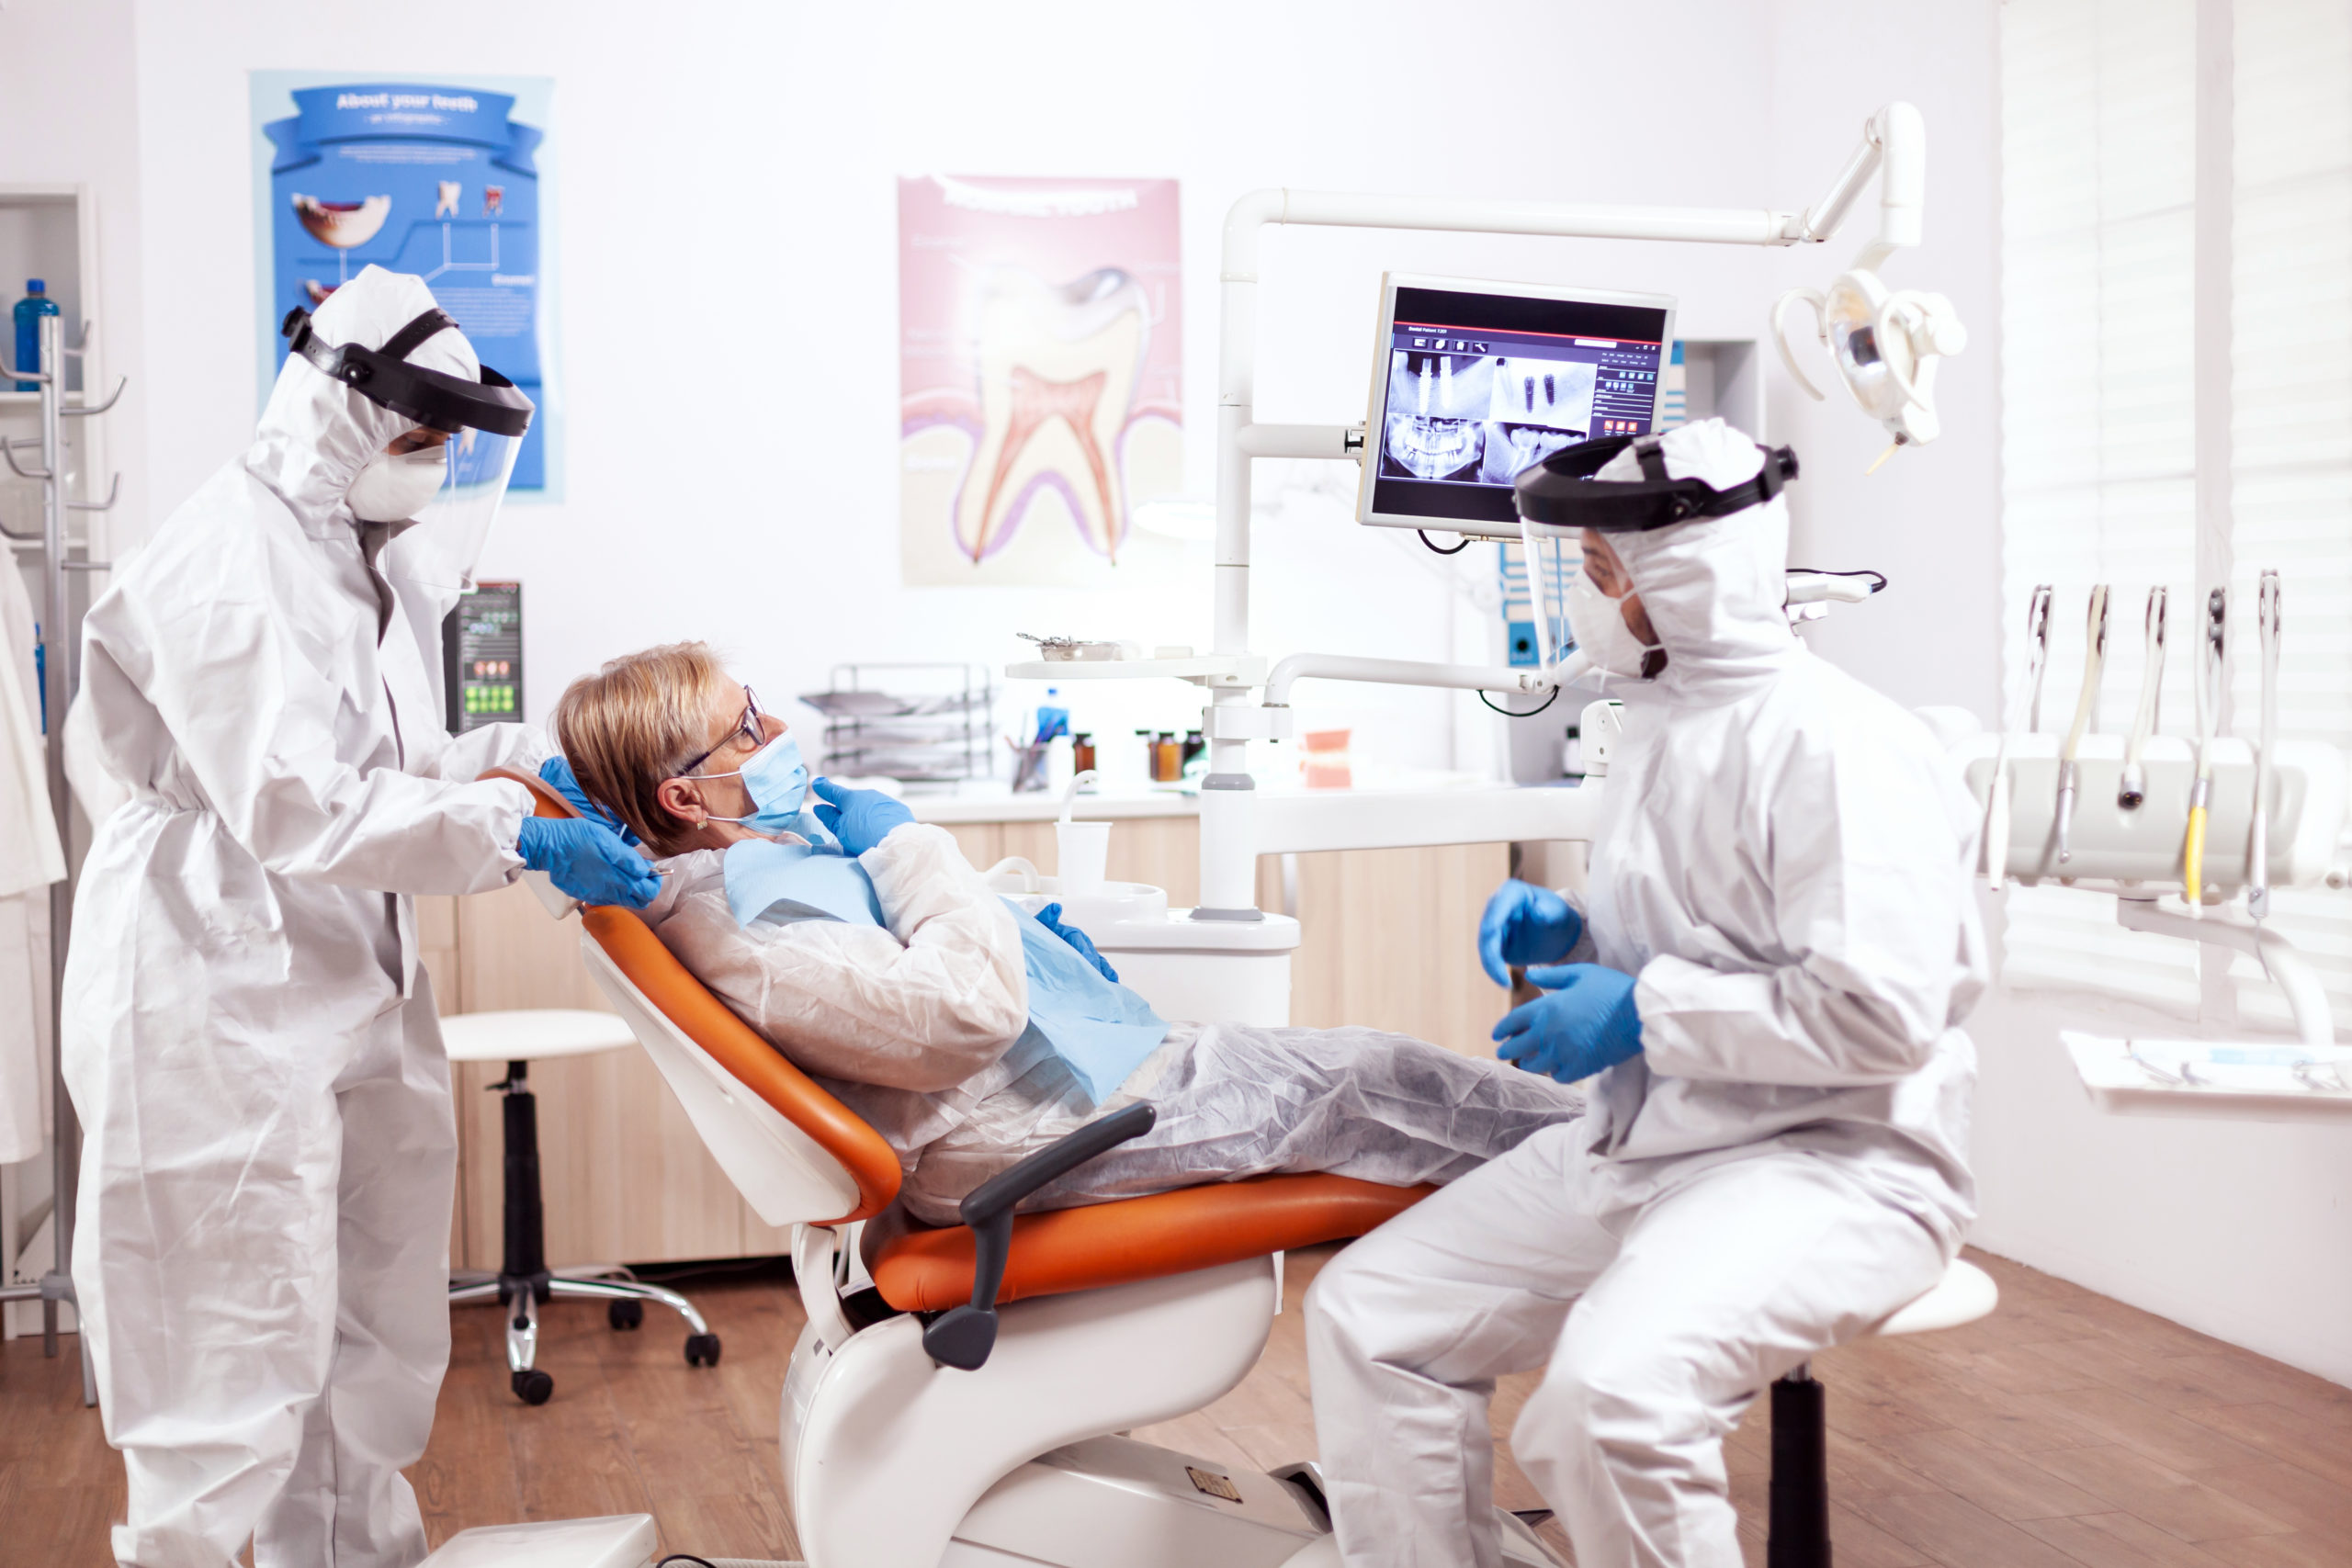 Visiting The Dentist: What To Expect During COVID-19